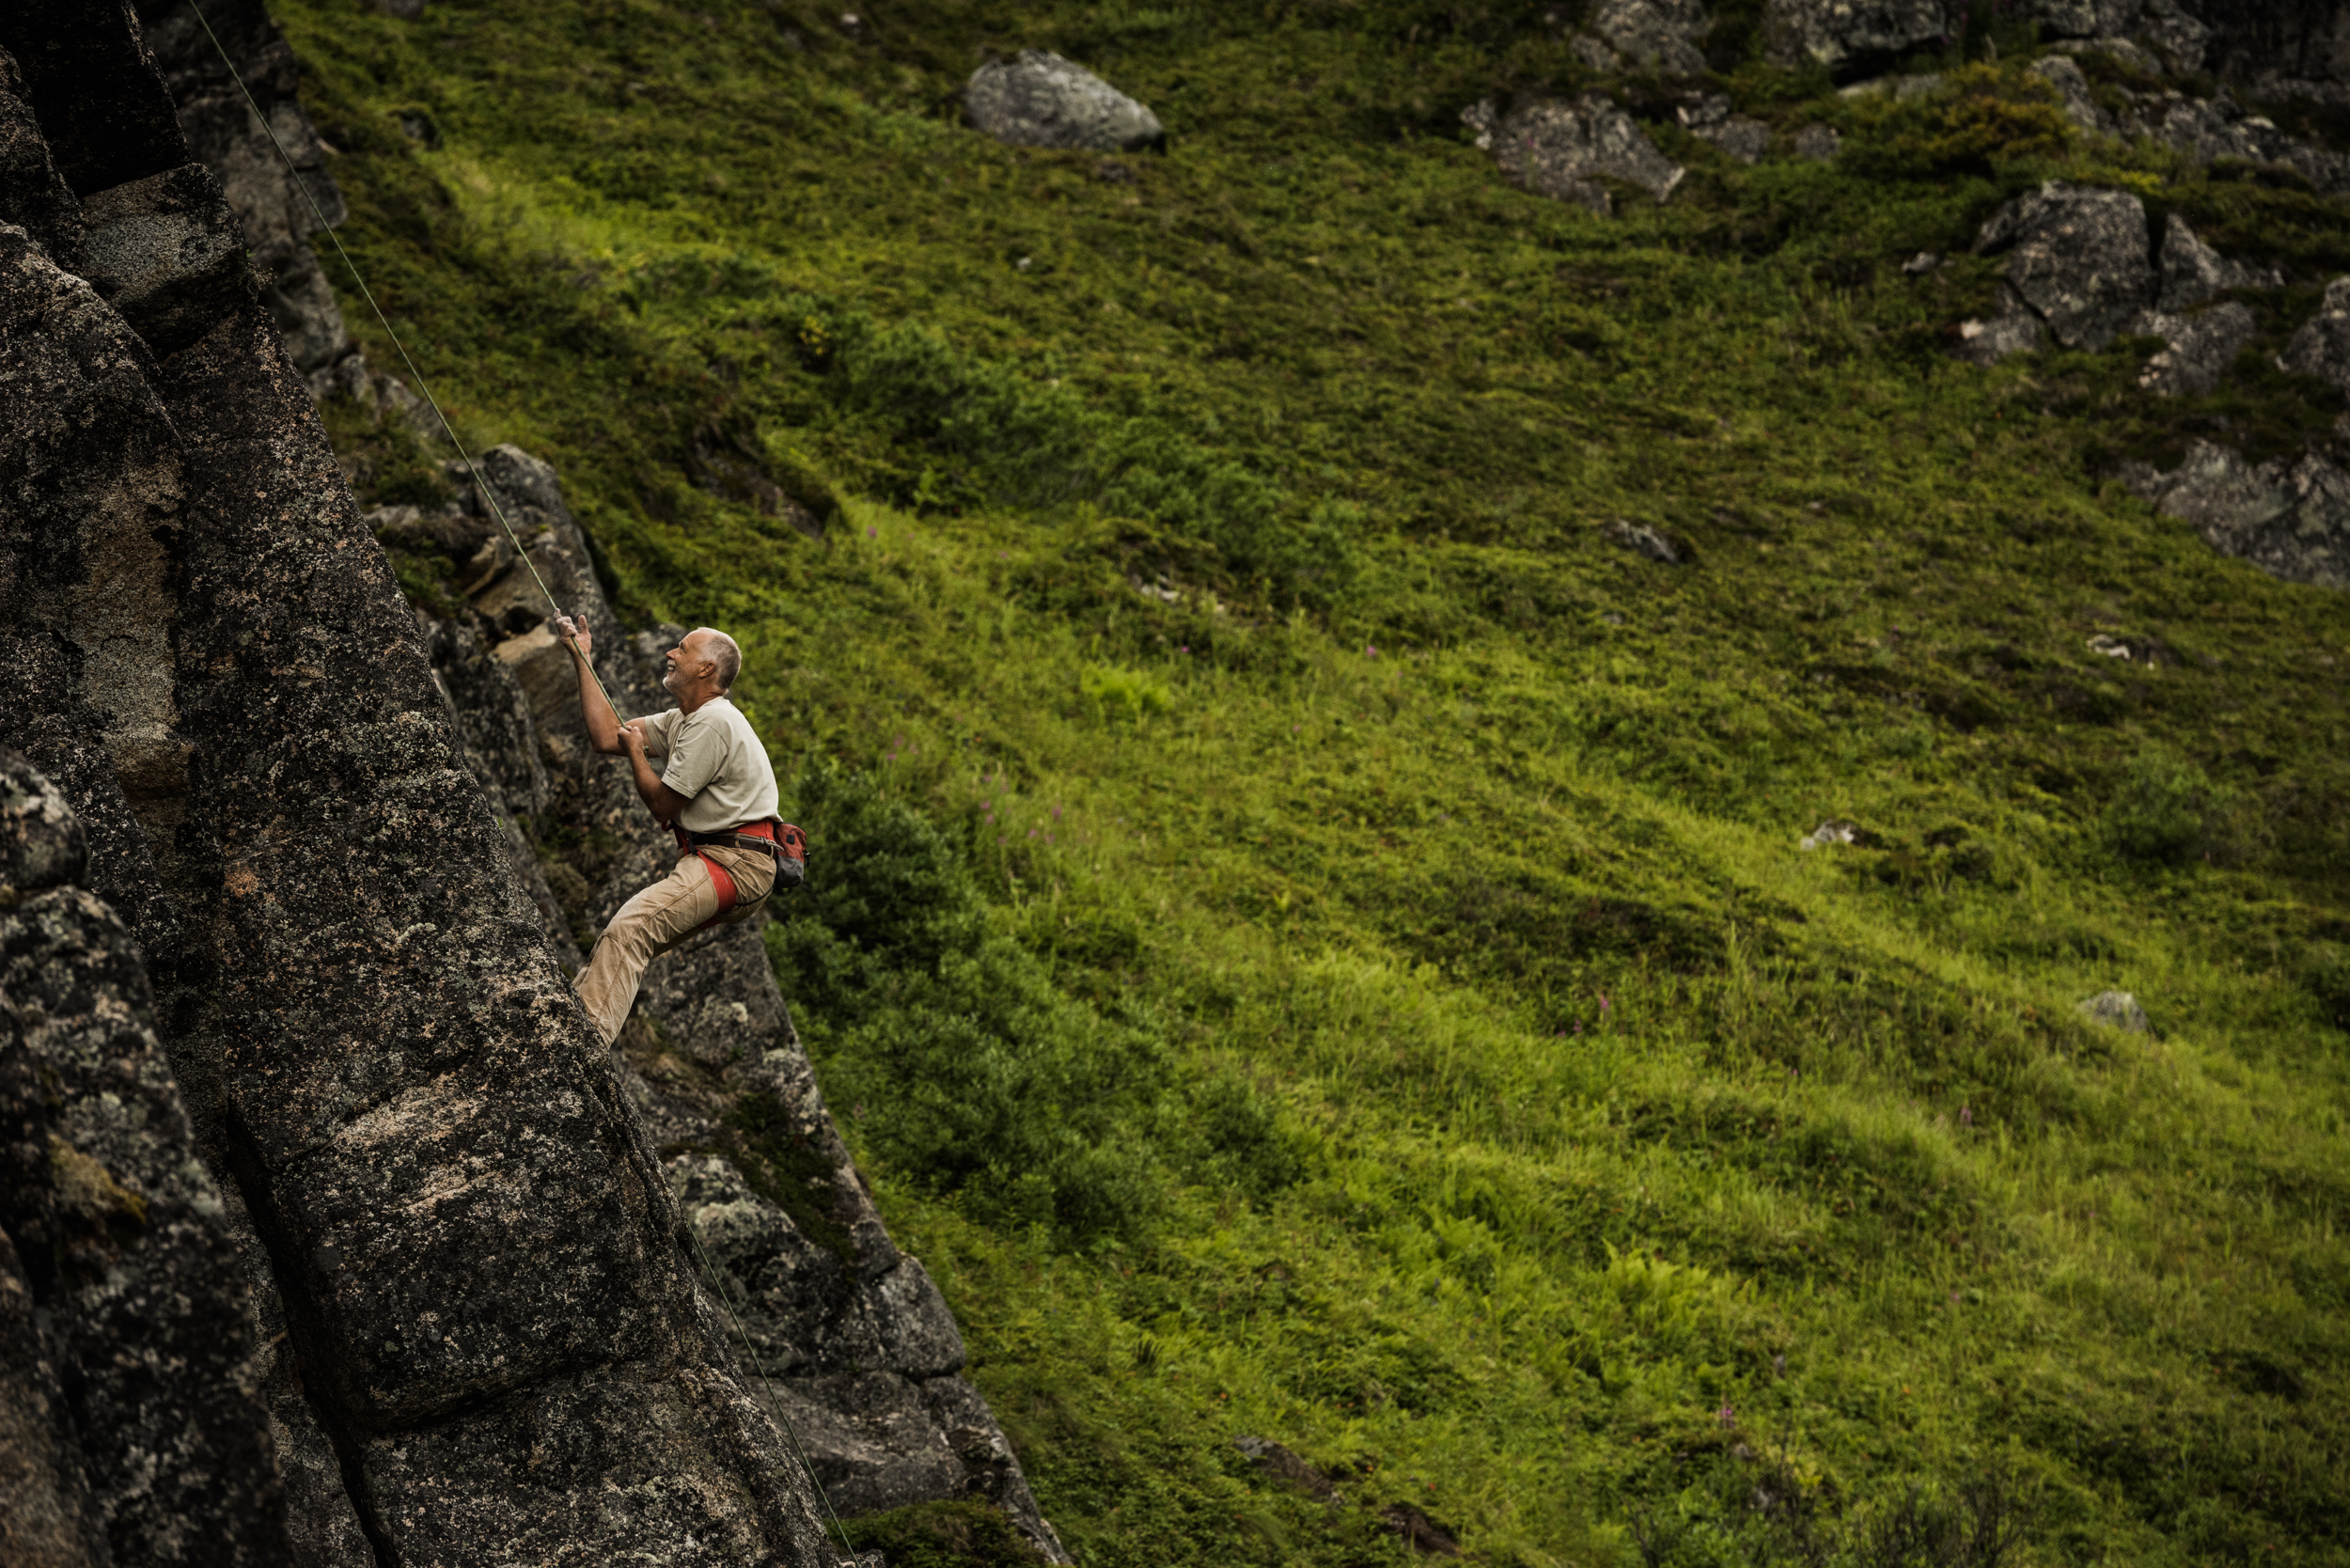 TaraShupe_Photography_Alaska_RockClimbing_HatchersPass_Travel_Photographer_Women_Adventure_039.jpg